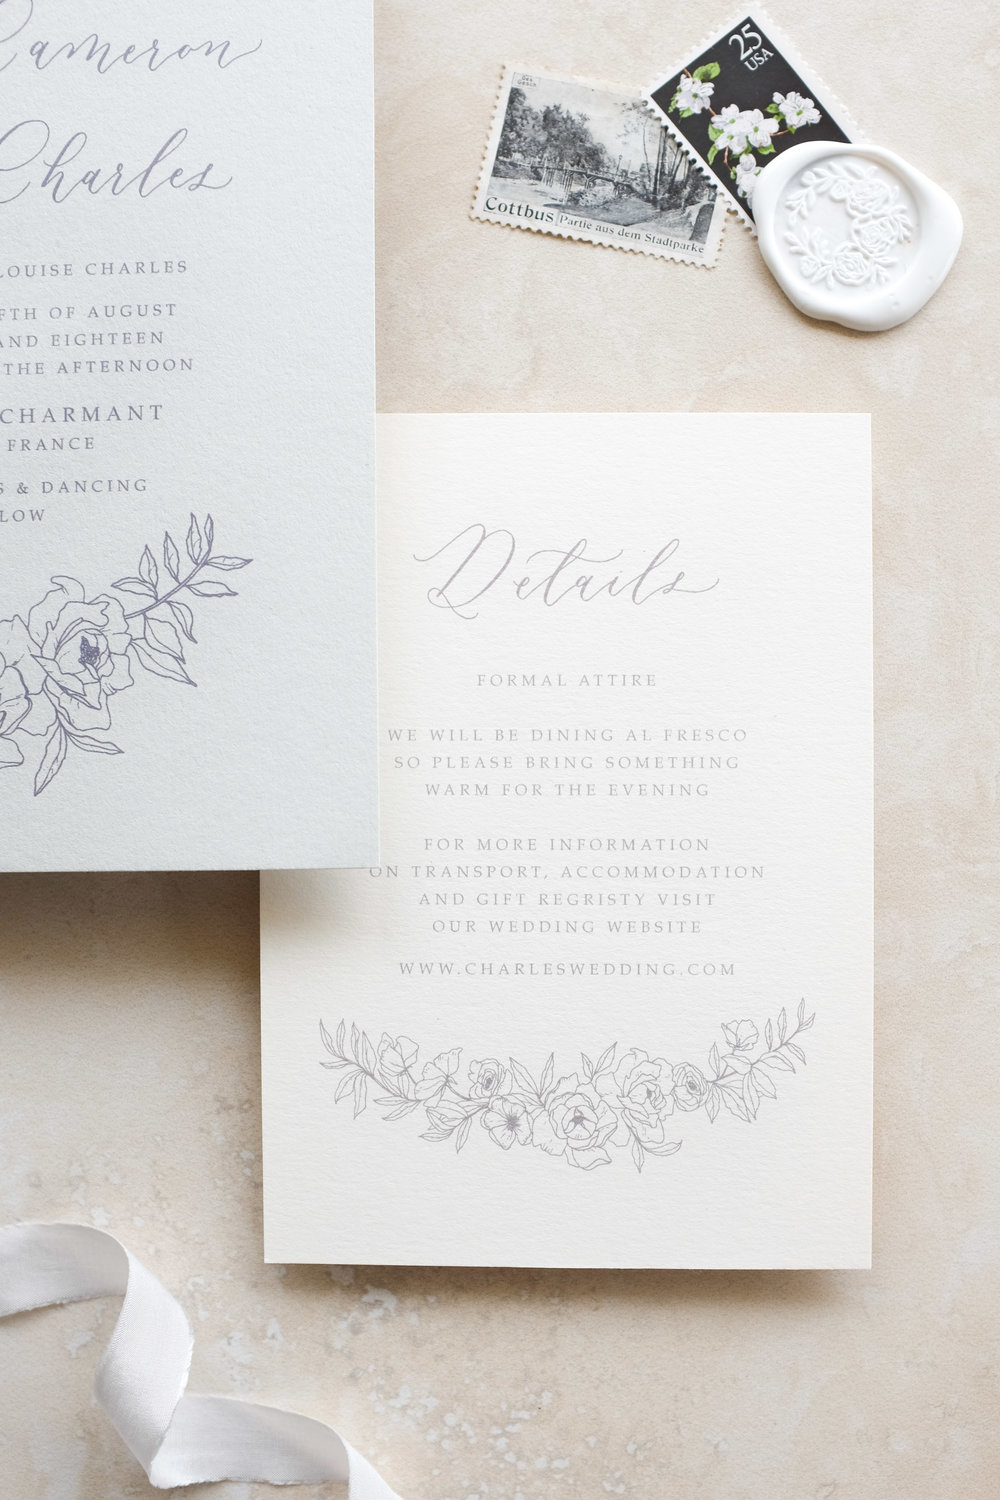 In Bloom Details Card From $240.00 nzd